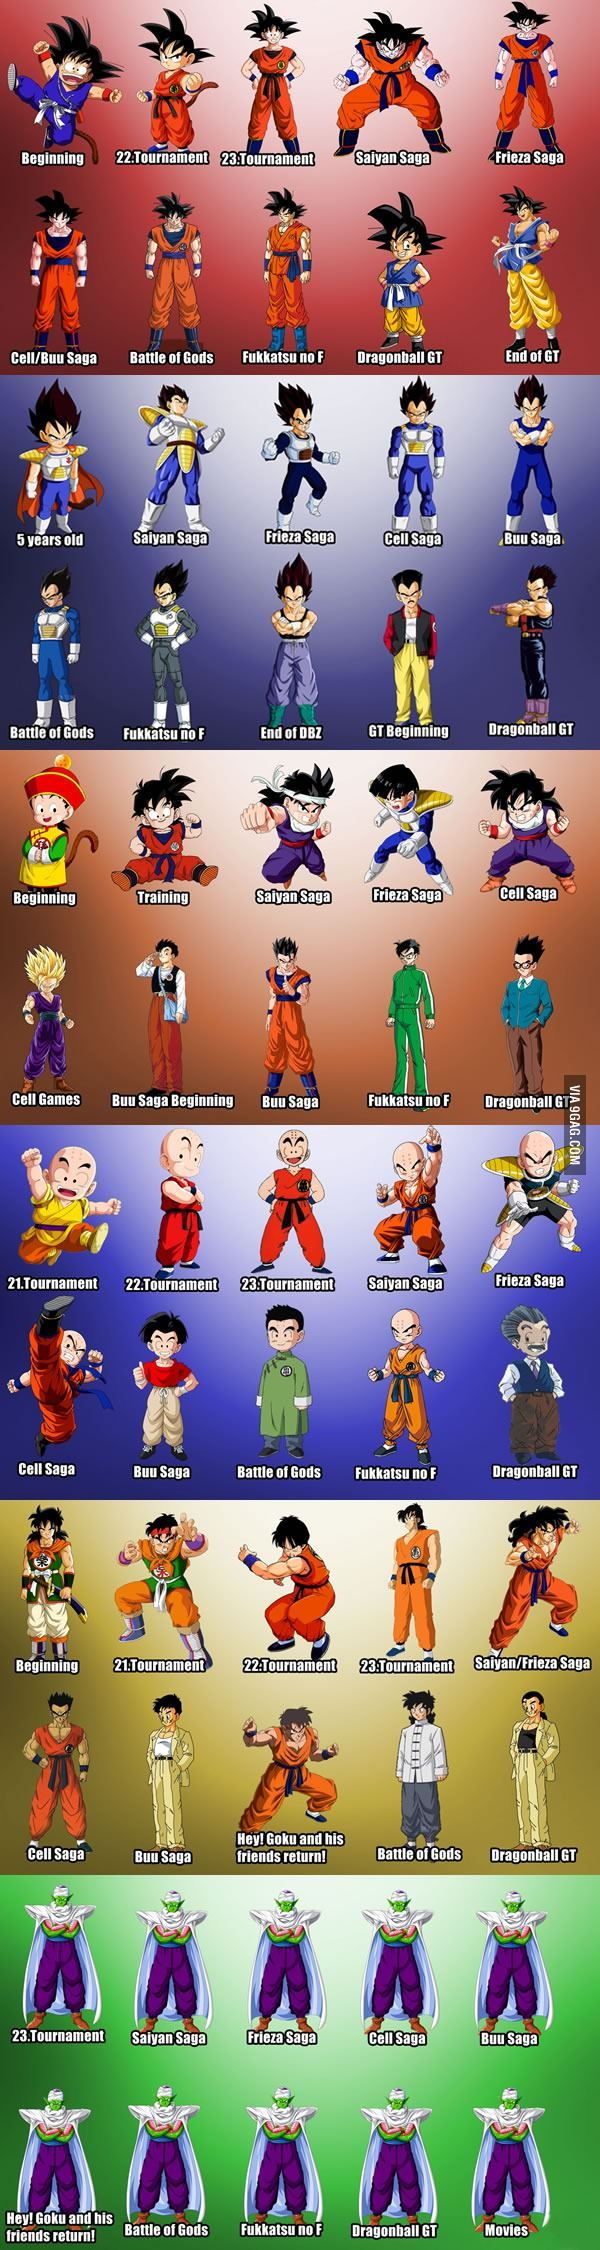 Dragon Ball Z Cartoon Characters Names : The evolution of dragon ball characters